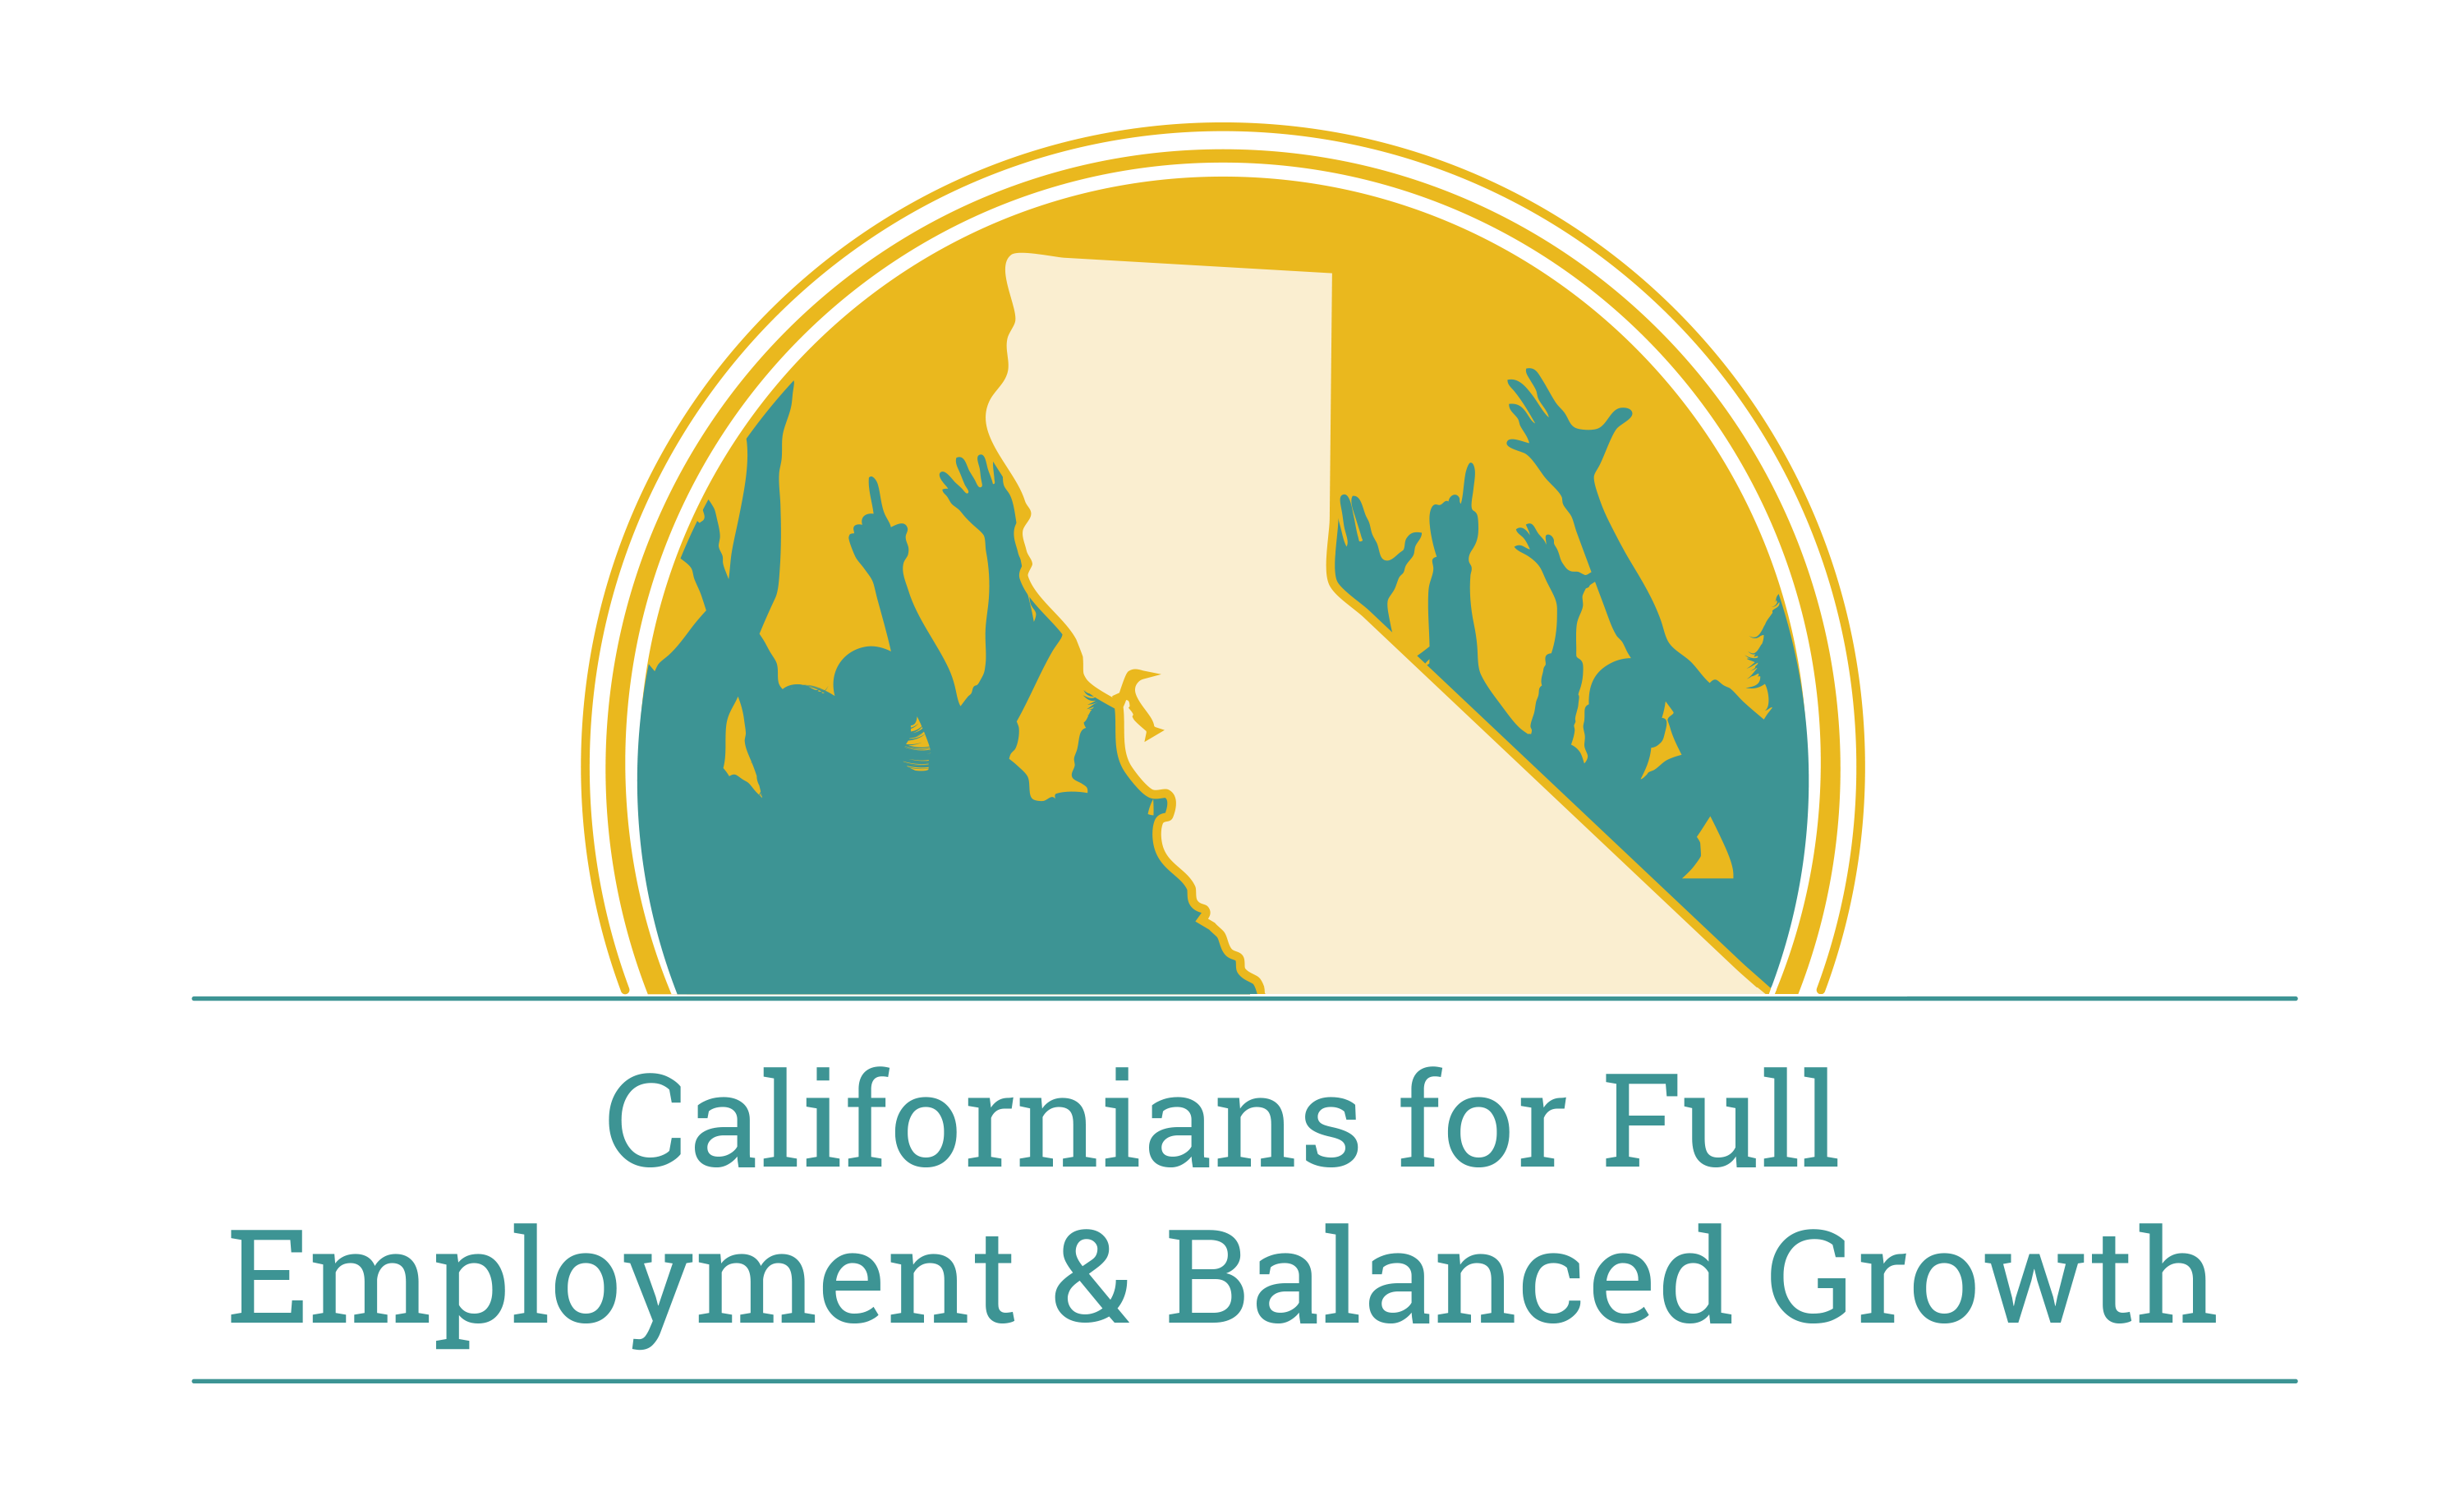 Californians for Full Employment and Balanced Growth - Sebastian Ridley-Thomas Ballot Measure Committee